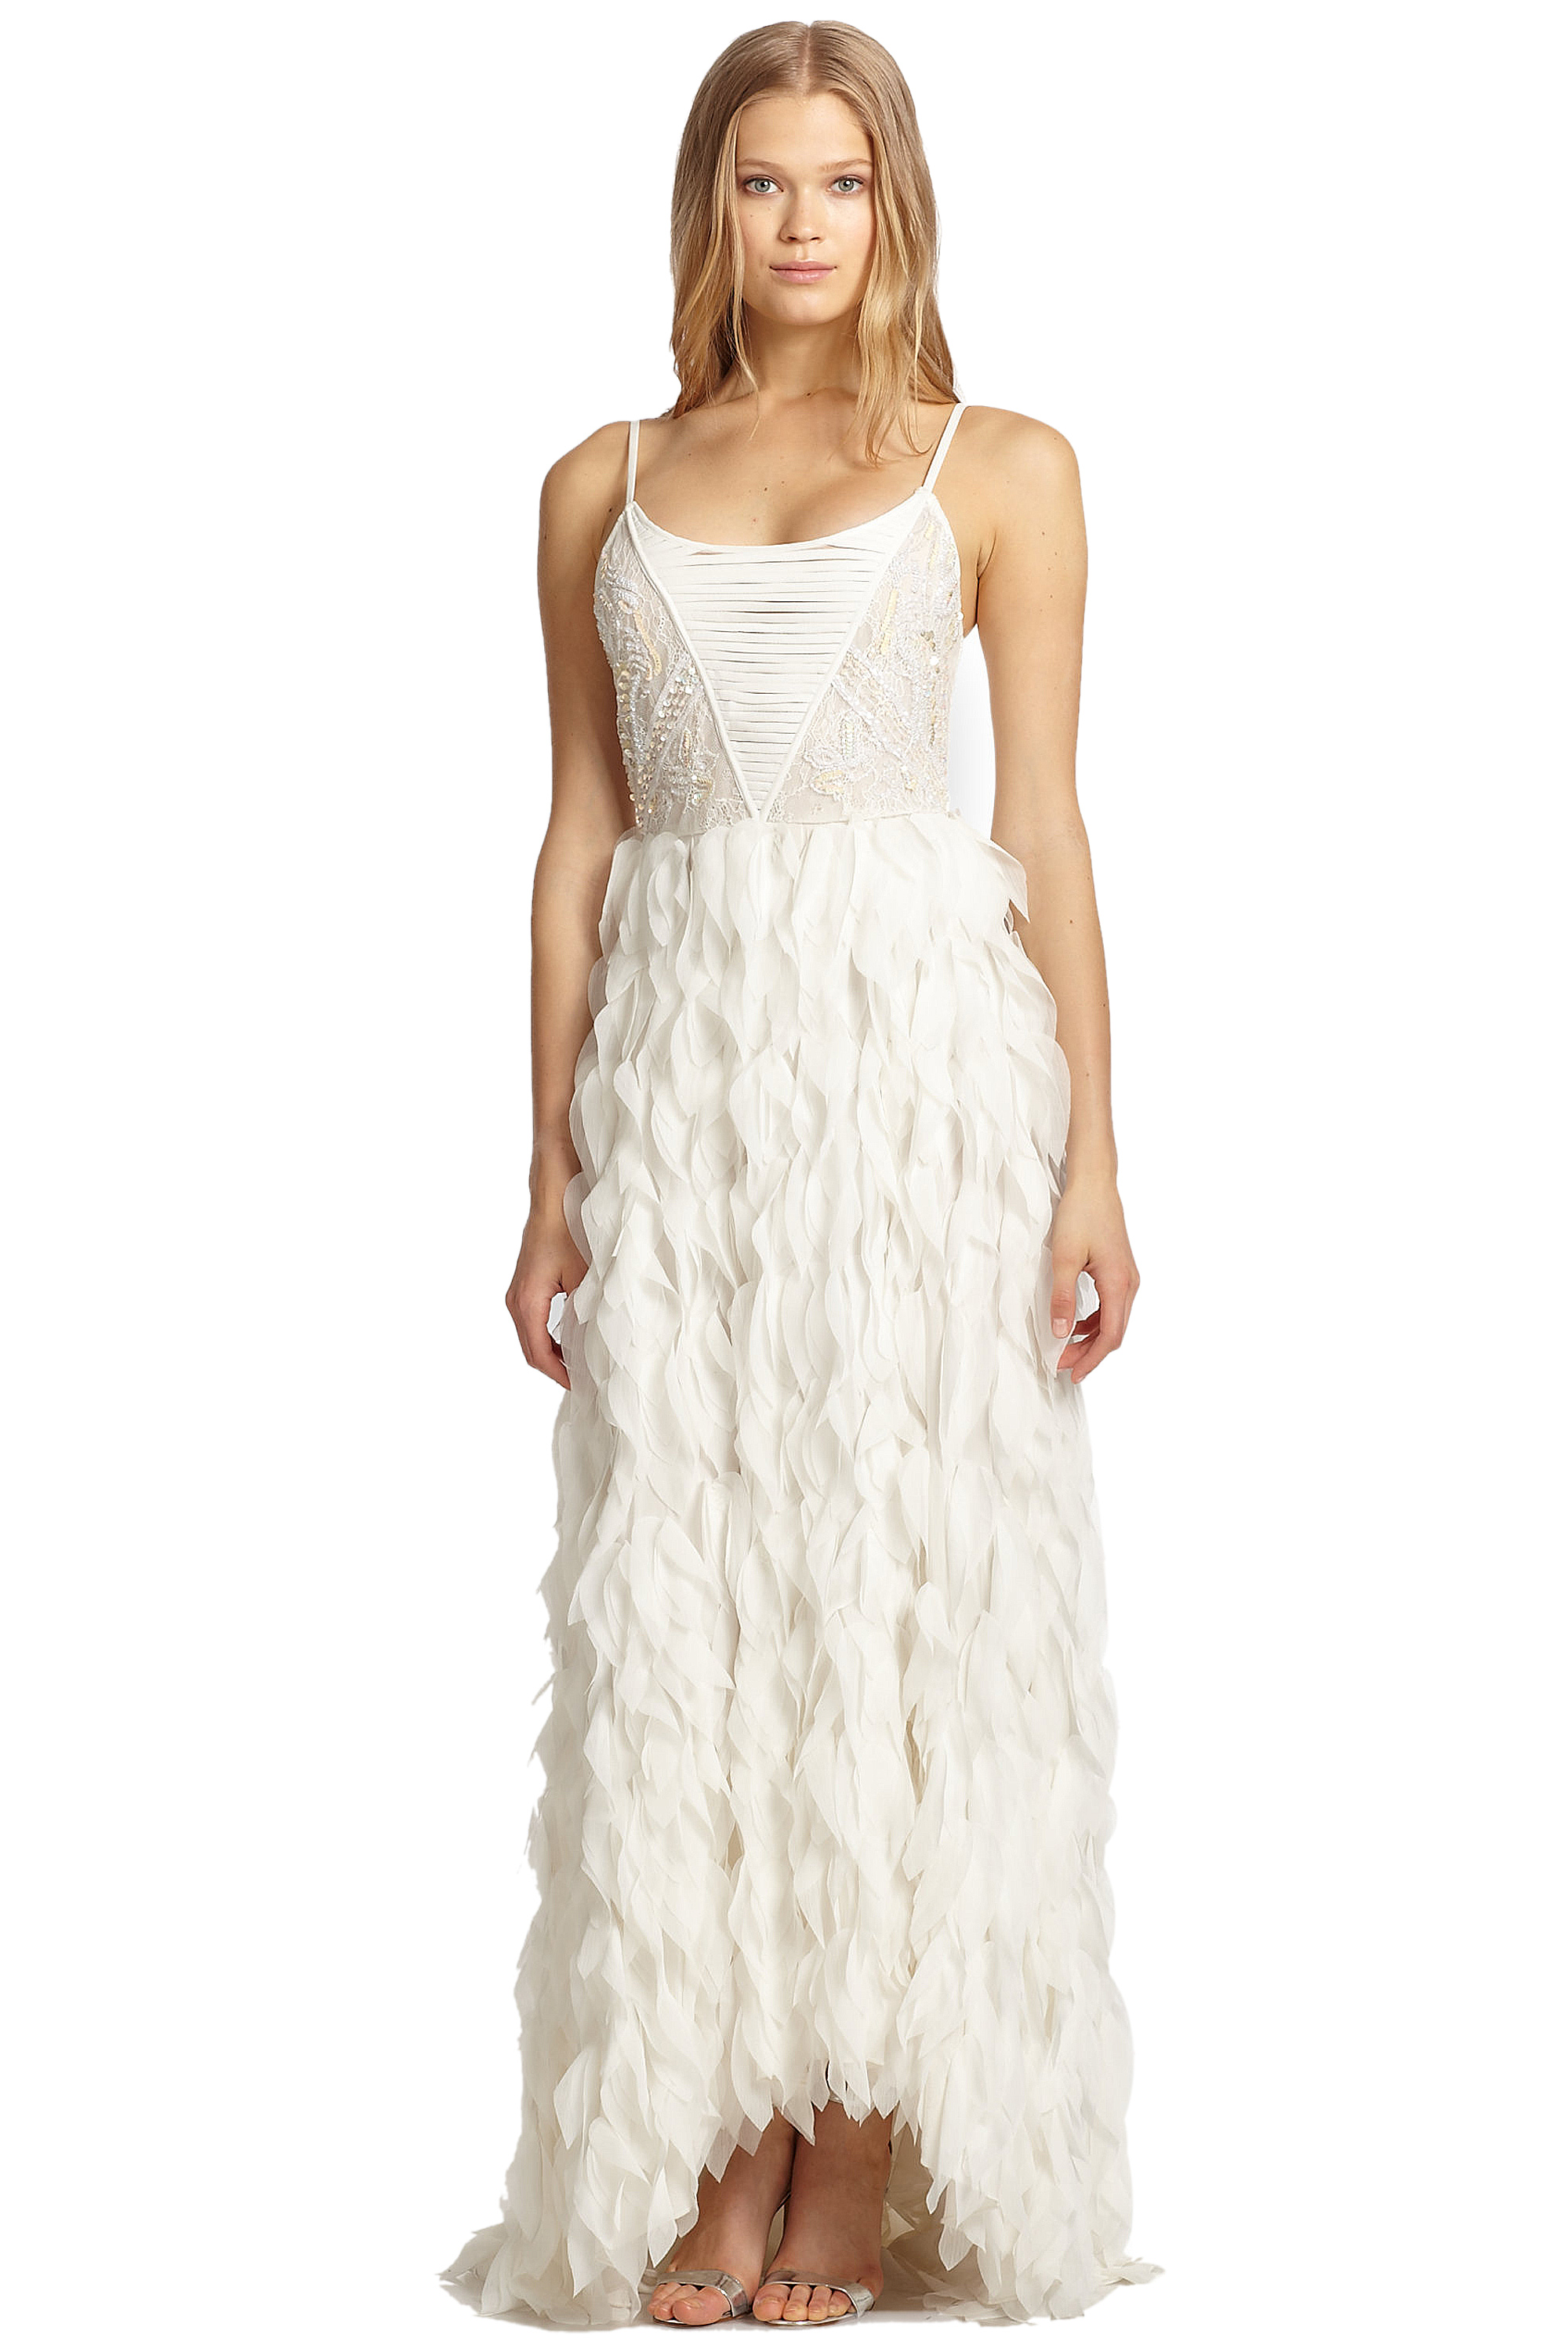 Alice & Olivia White Eaddy Embroidered Feather Evening Gown Dress 4 ...